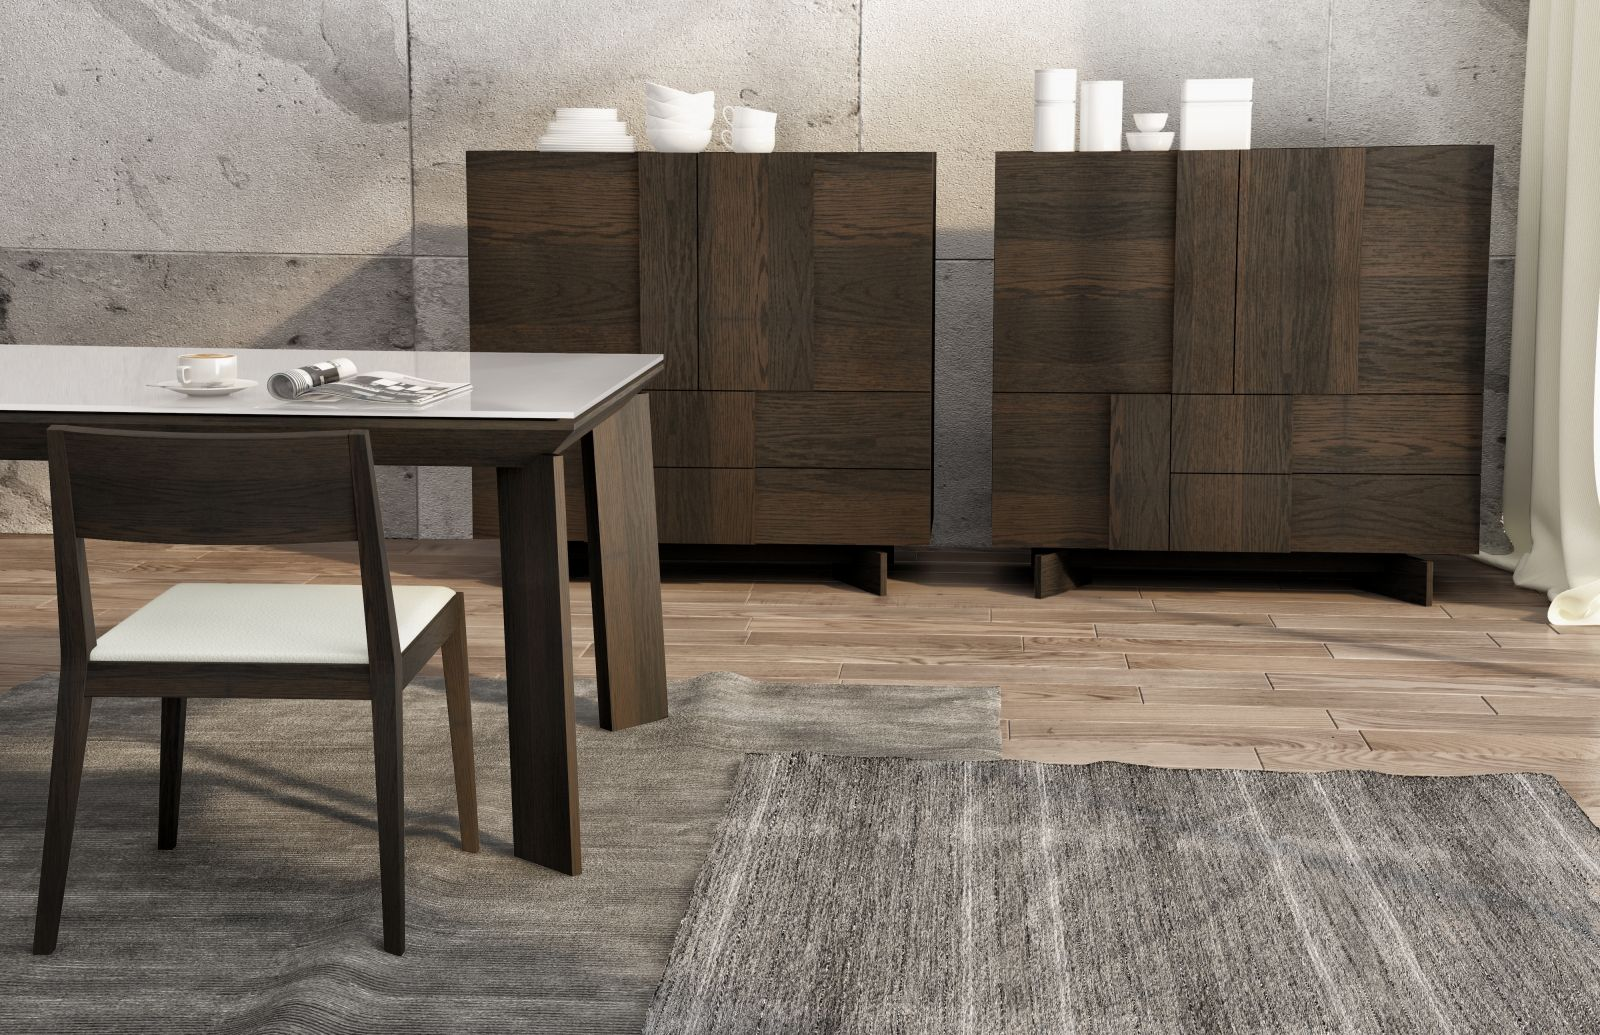 Gamme UP - Recevoir : Collection Illusion http://www.huppe.net/default.asp?Lg=Fr=83